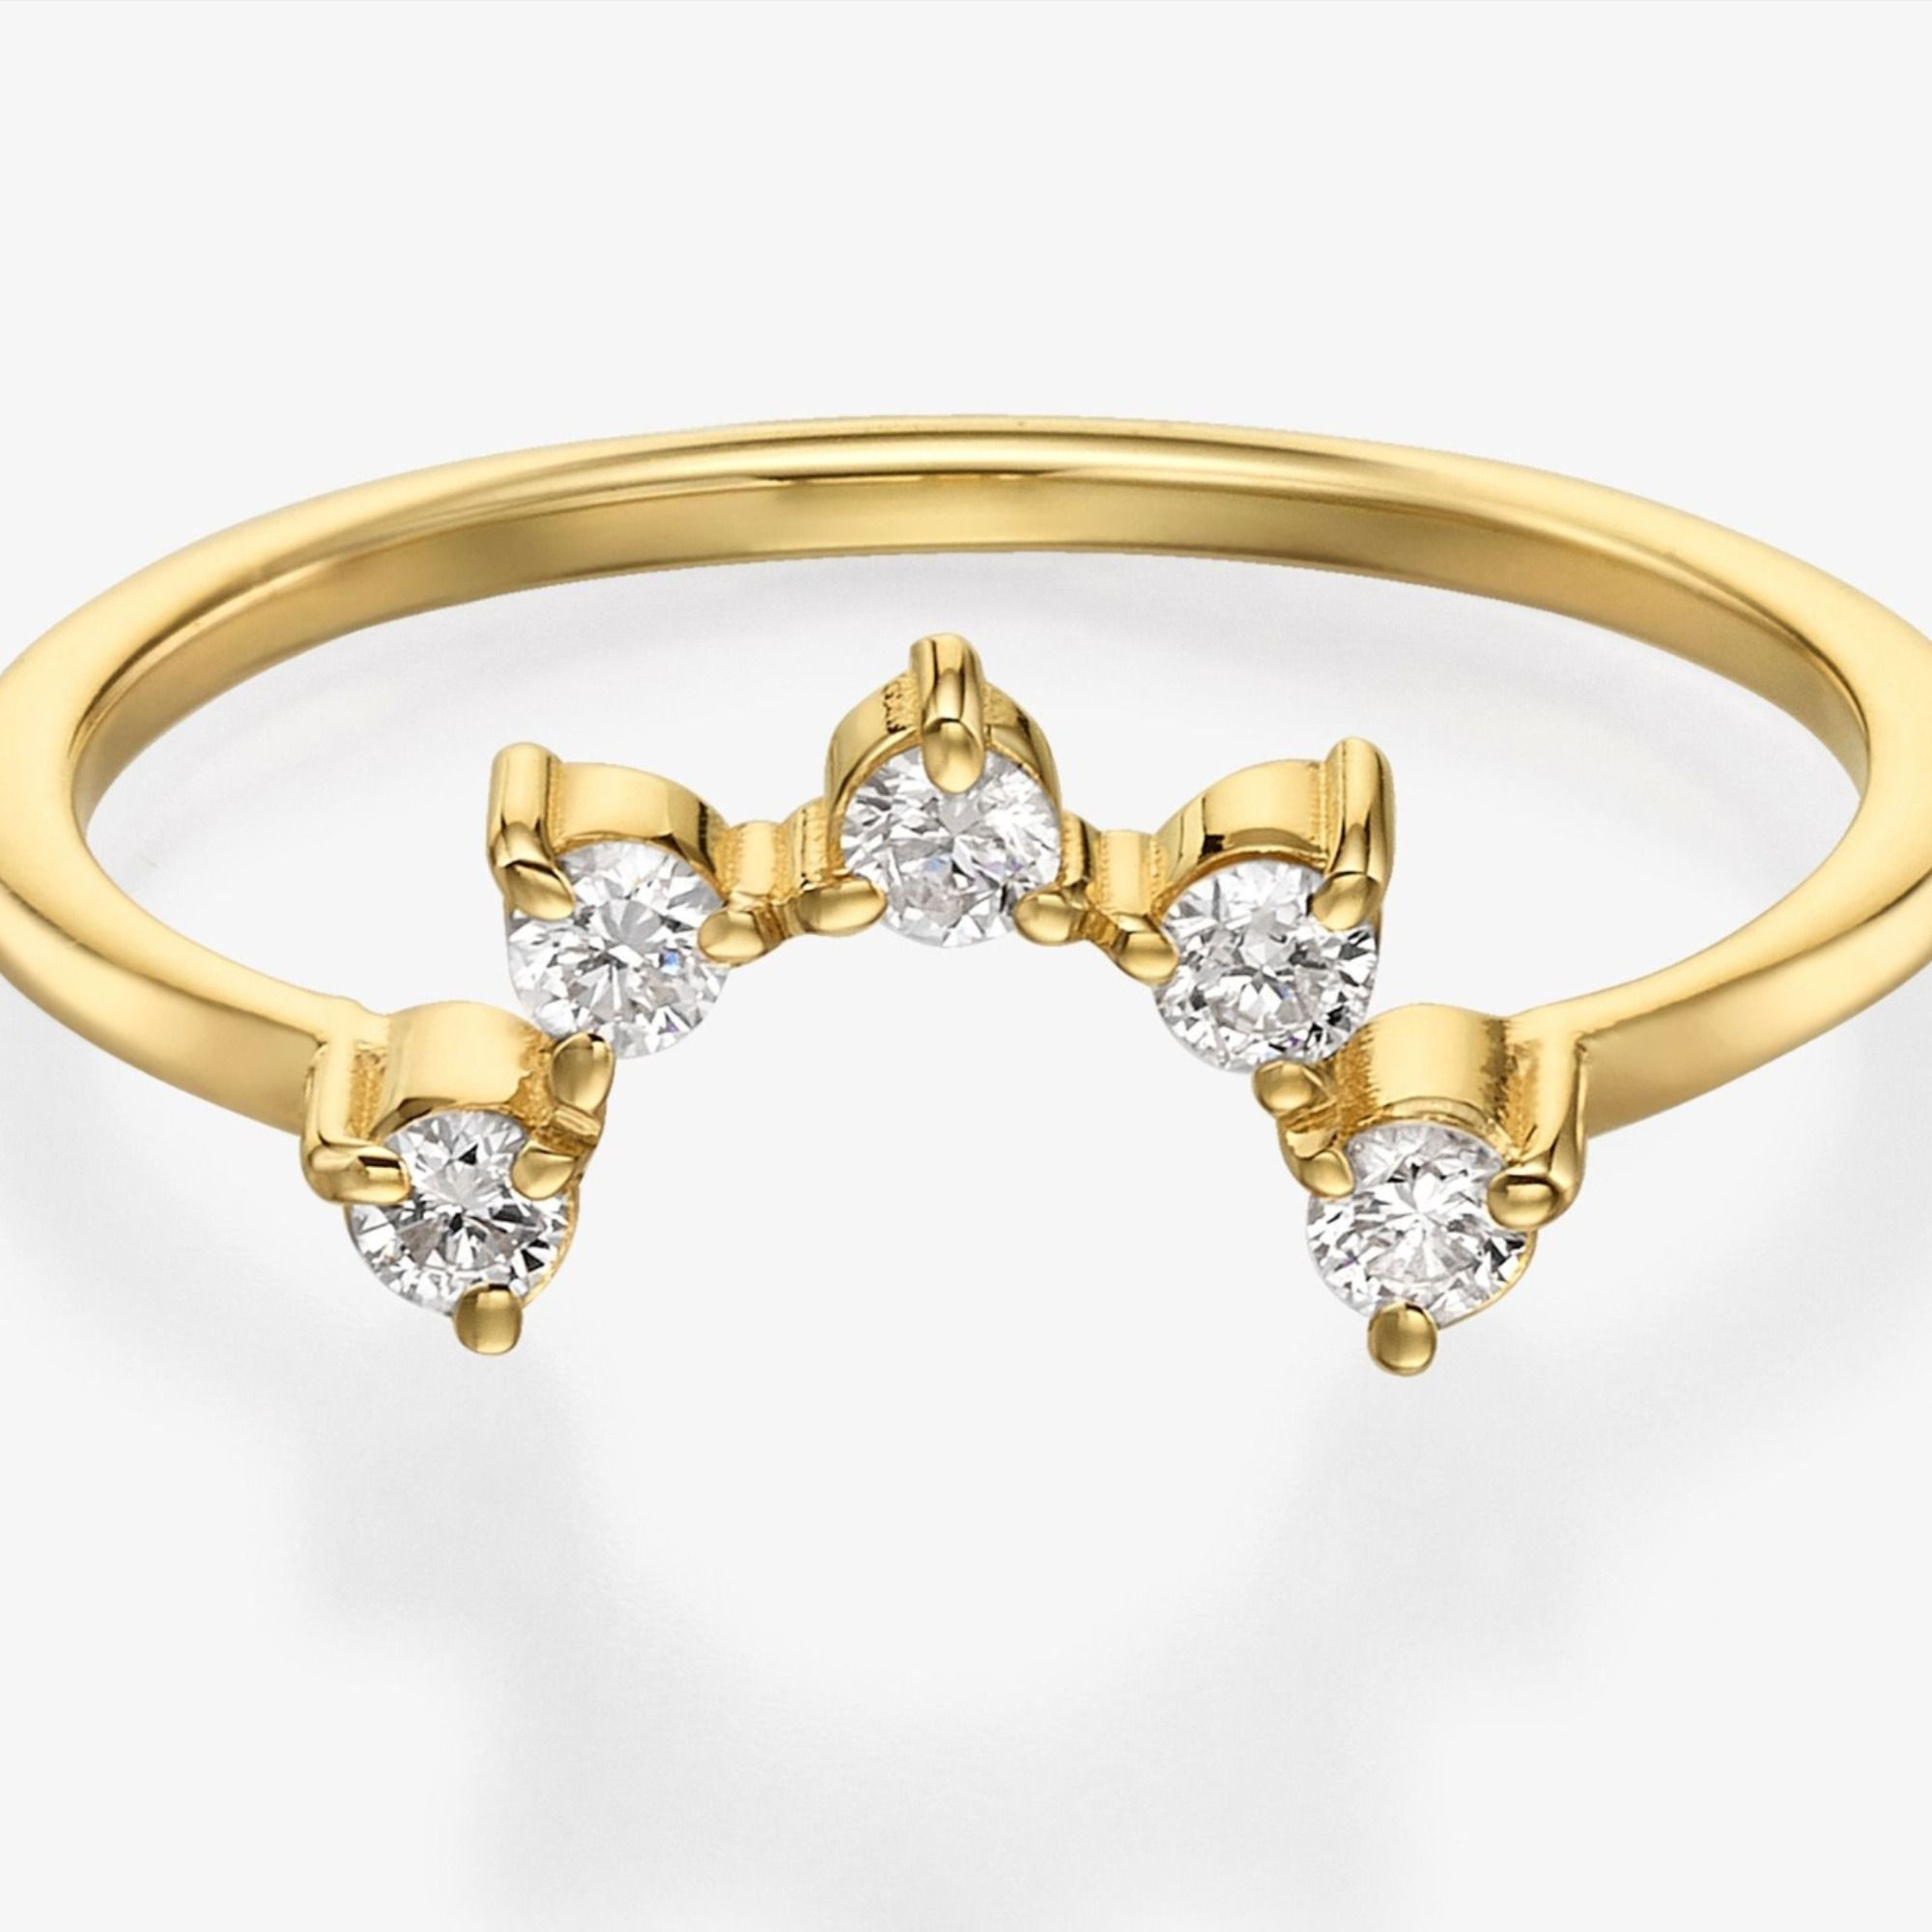 This stunning cubic zirconia 14k / 18k solid gold ring is